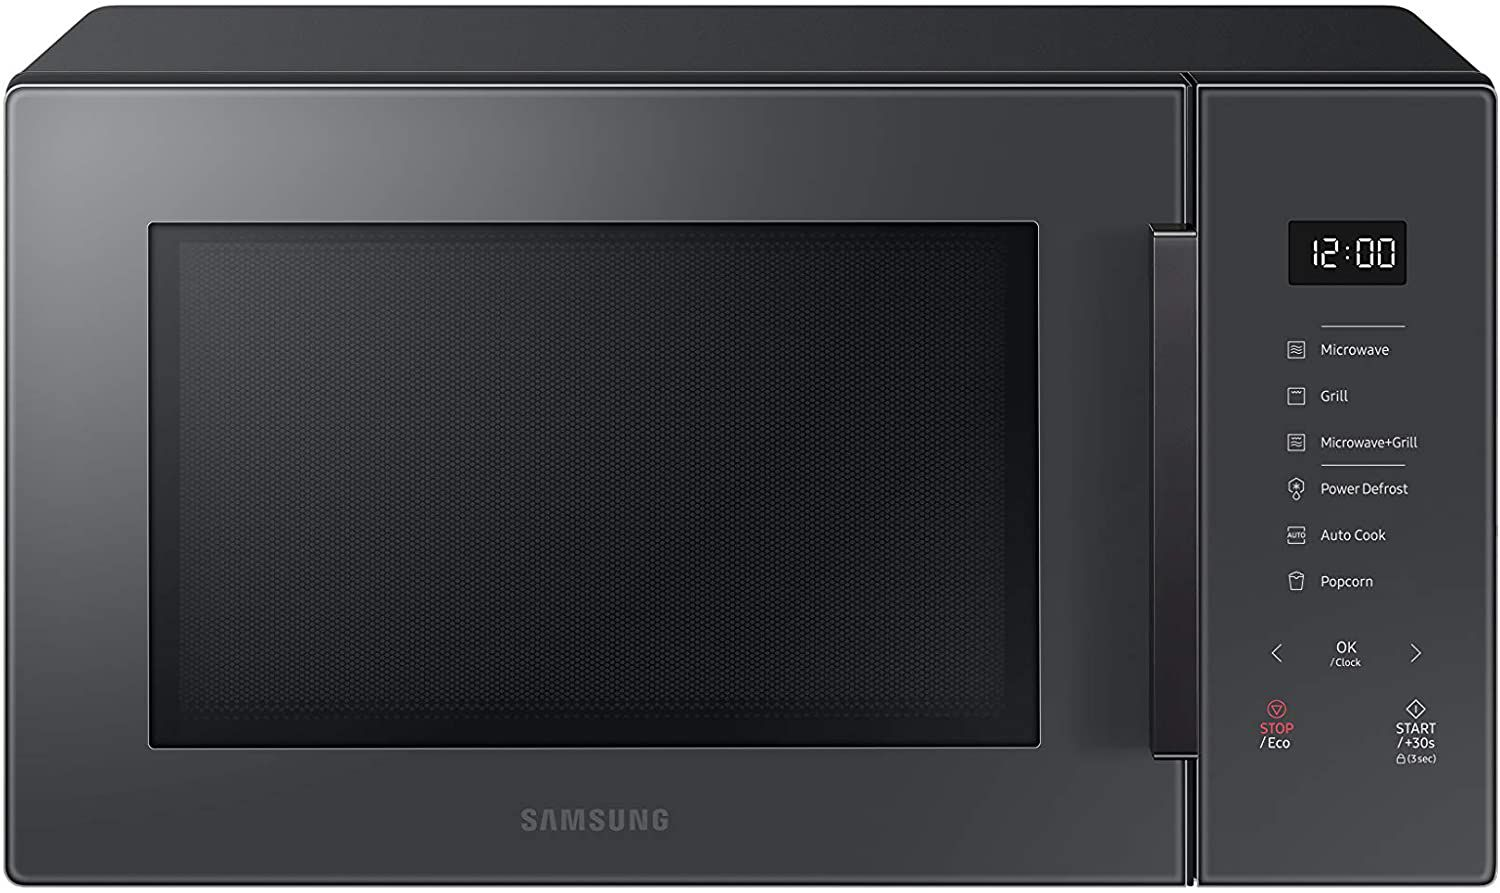 Samsung 1.1 cu. Ft. Countertop Microwave with Grilling Element in Charcoal